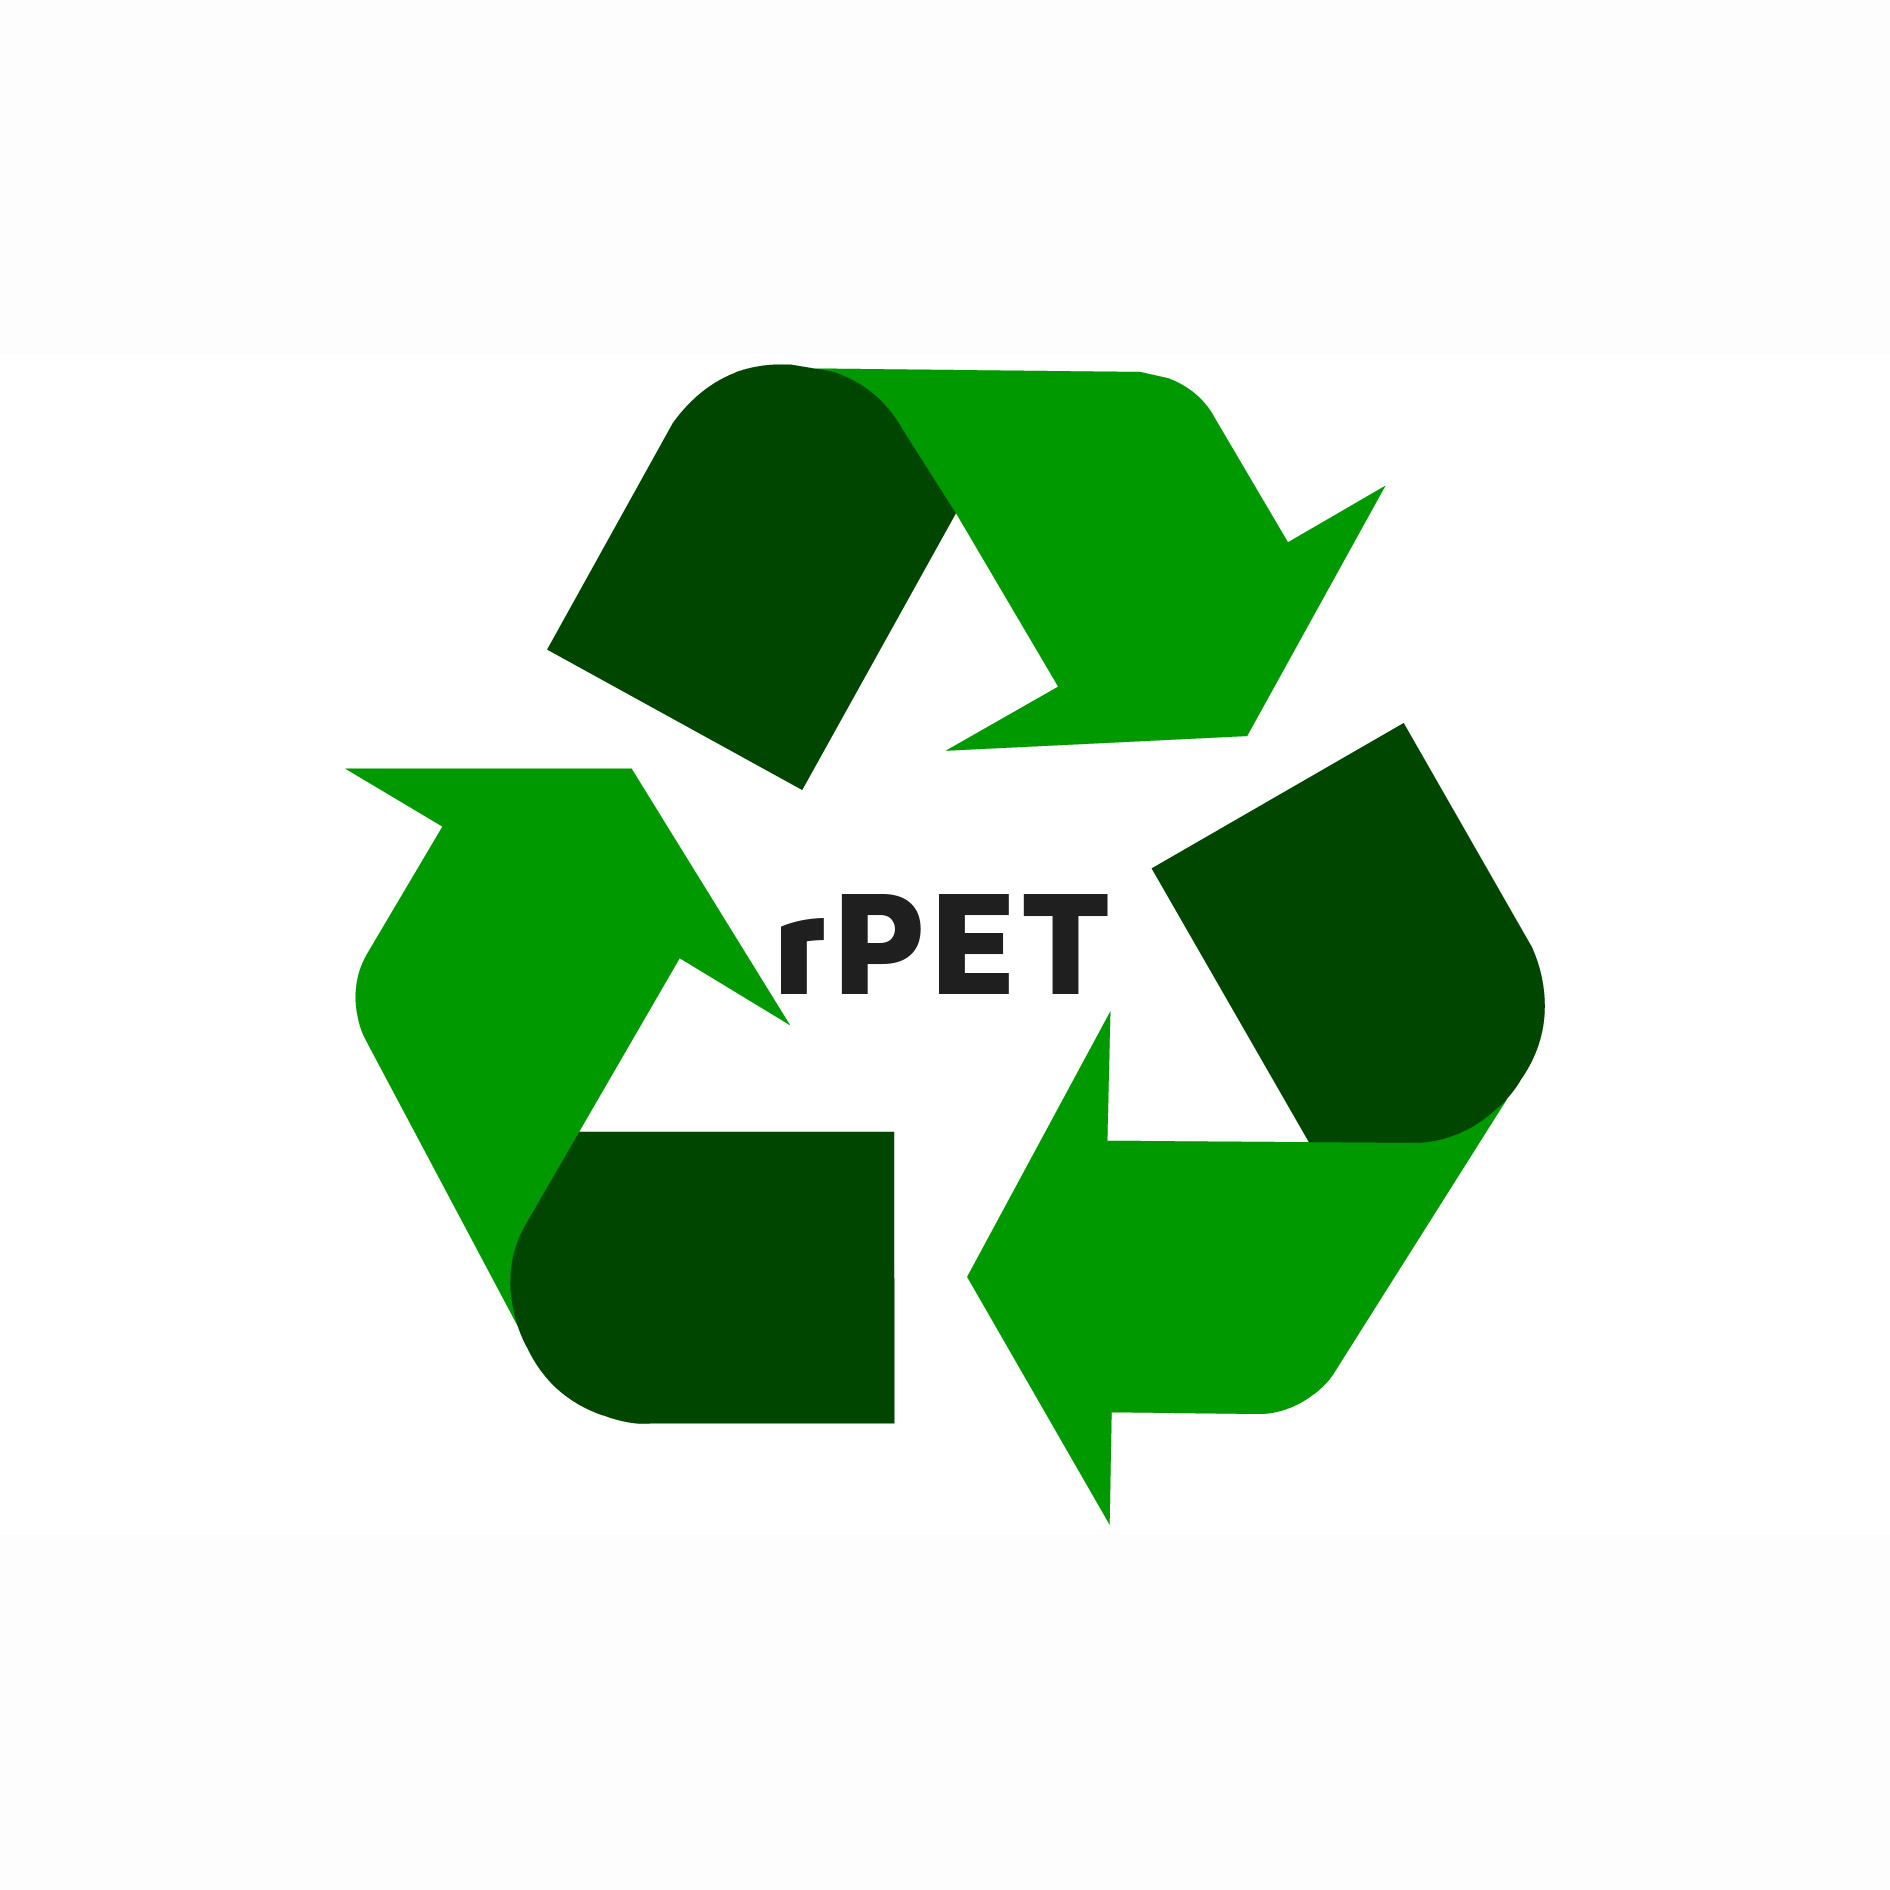 rPET-logo-green-square